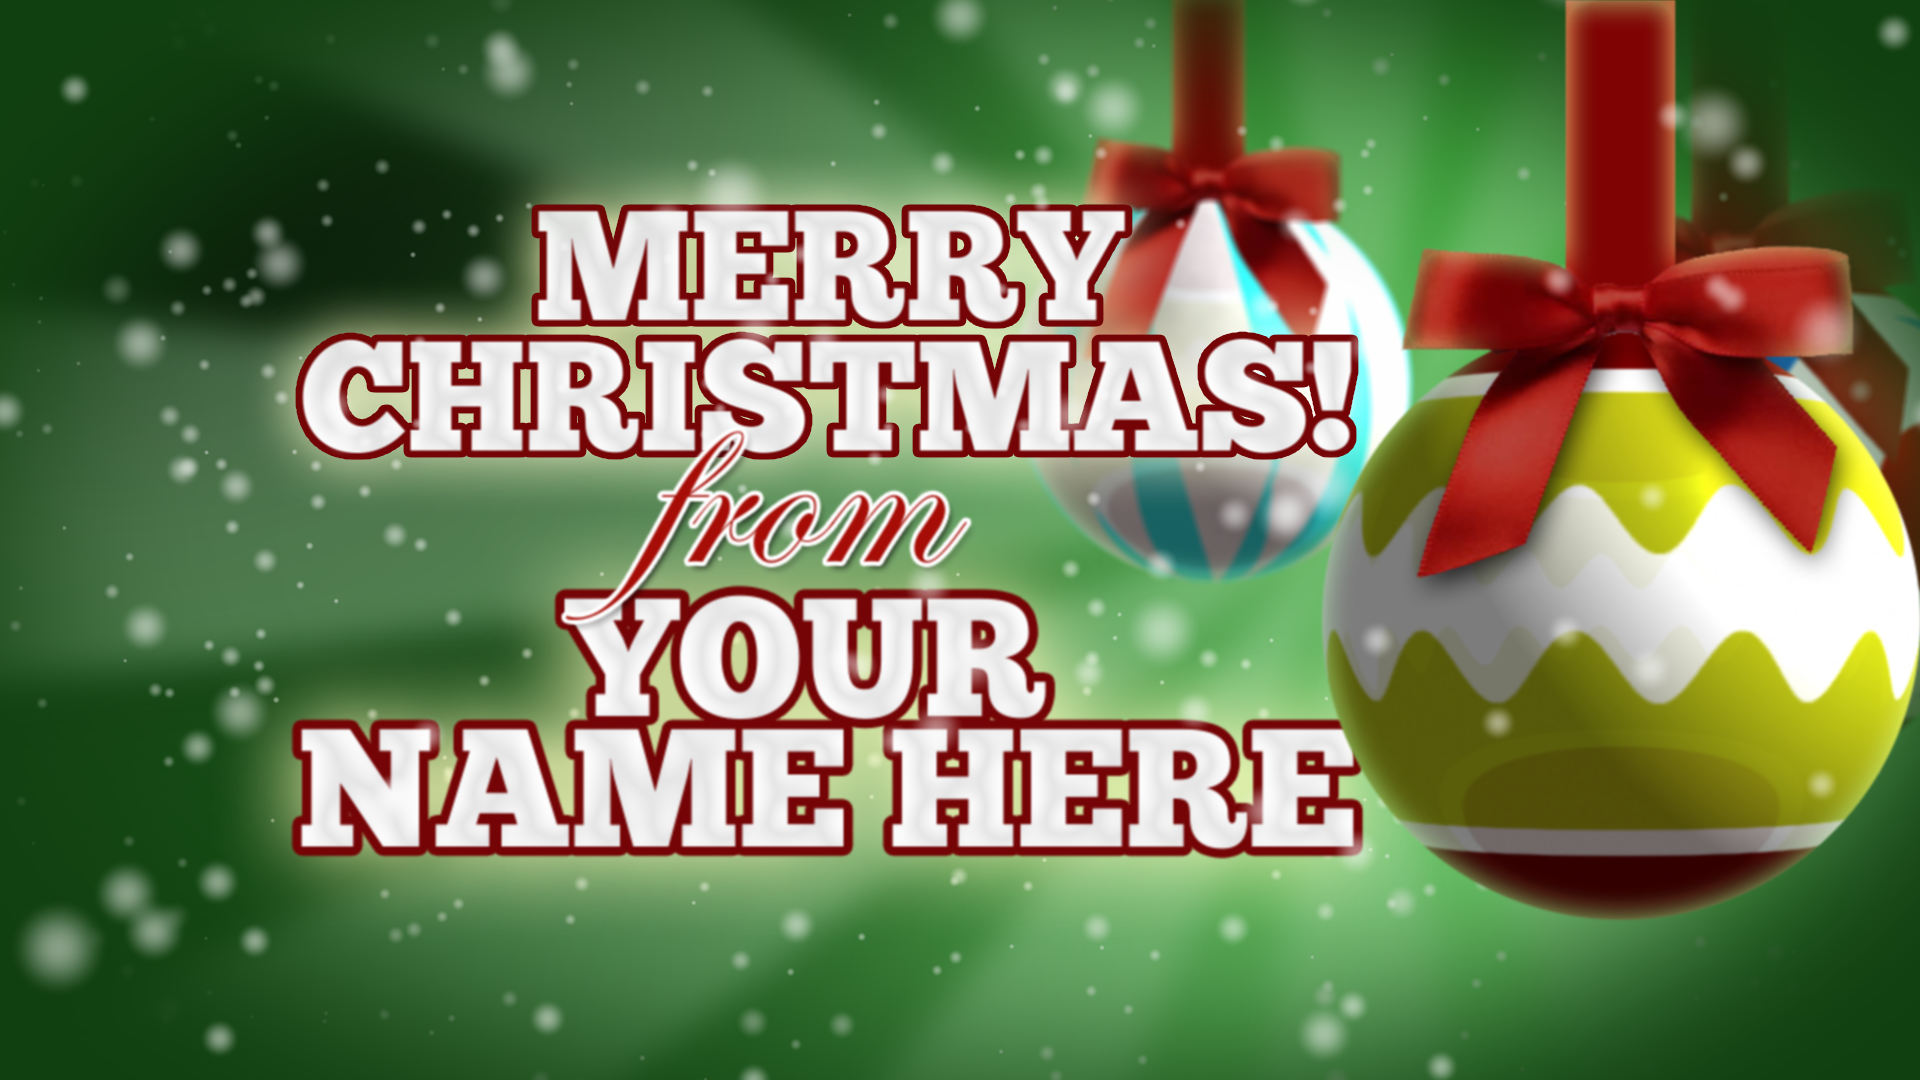 After Effects Tutorial Christmas Greetings 2011 Short Form Video